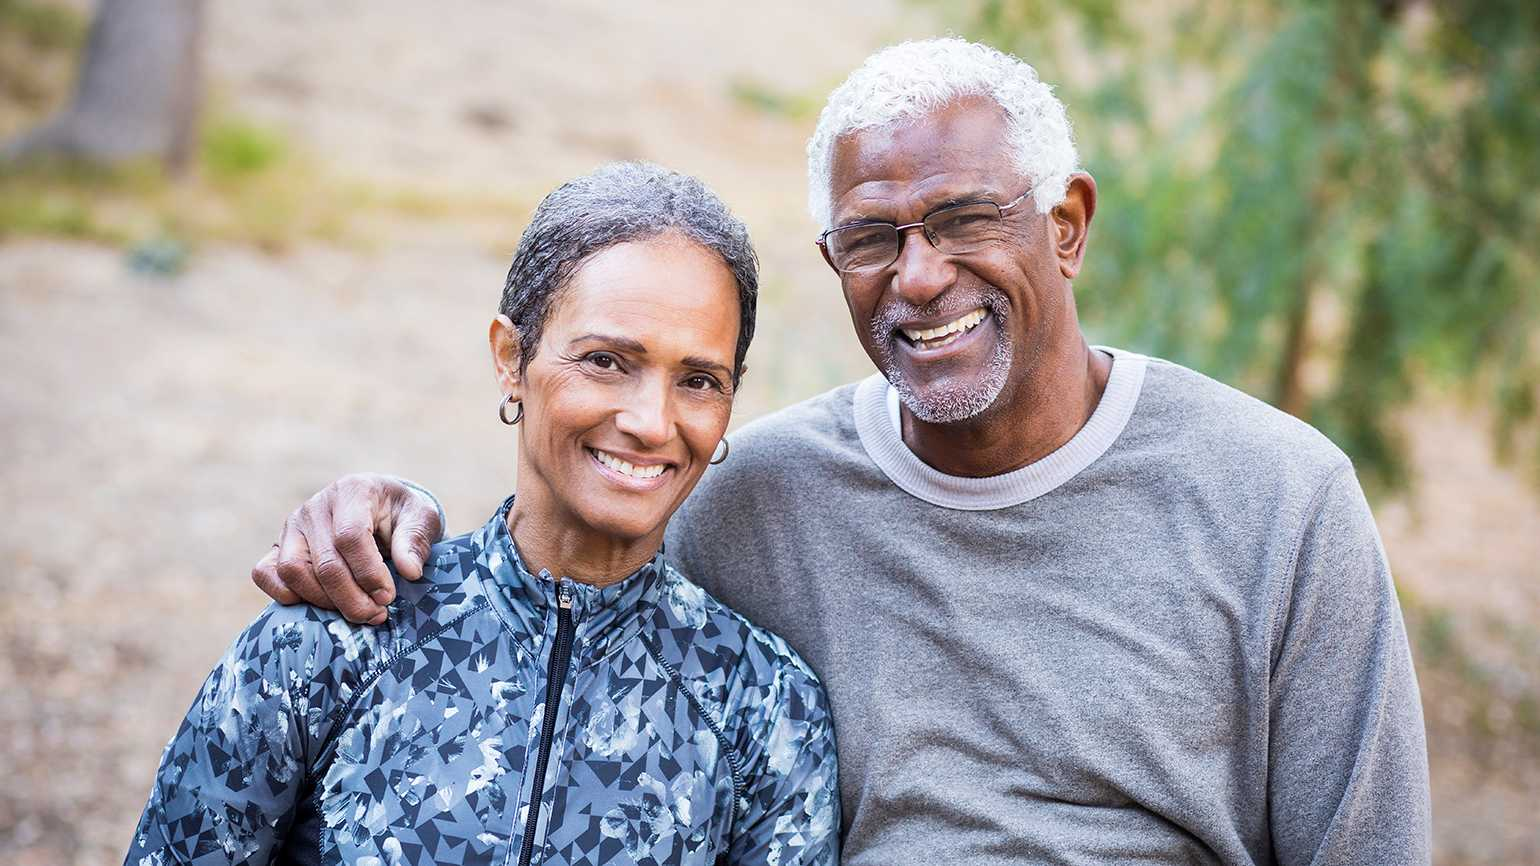 A smiling senior couple